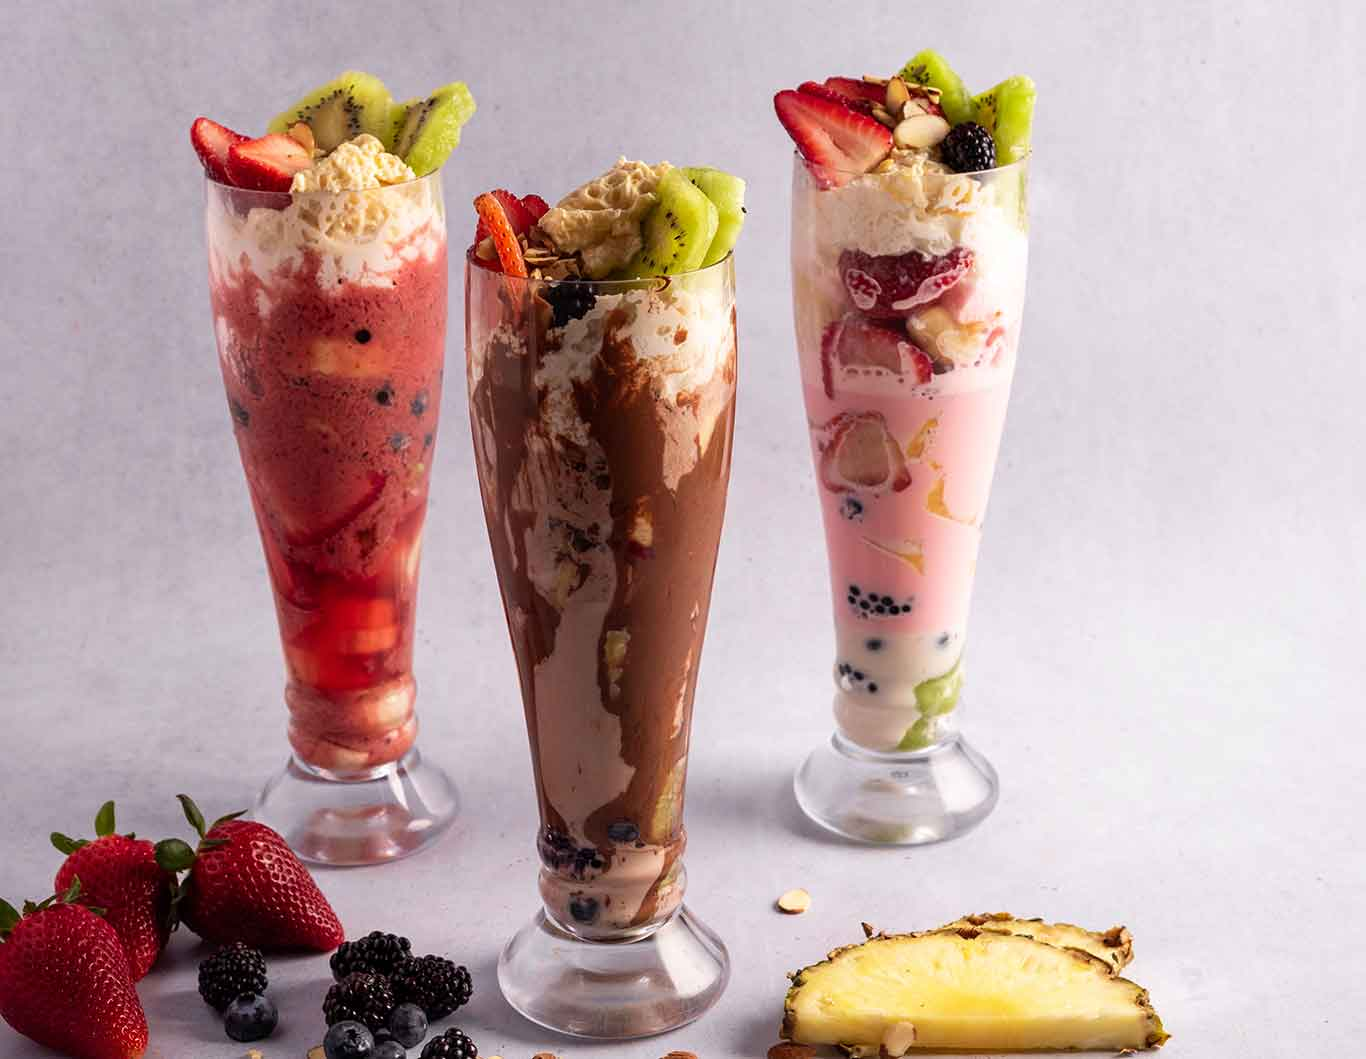 Three flavors of chocolate and fruit smoothies